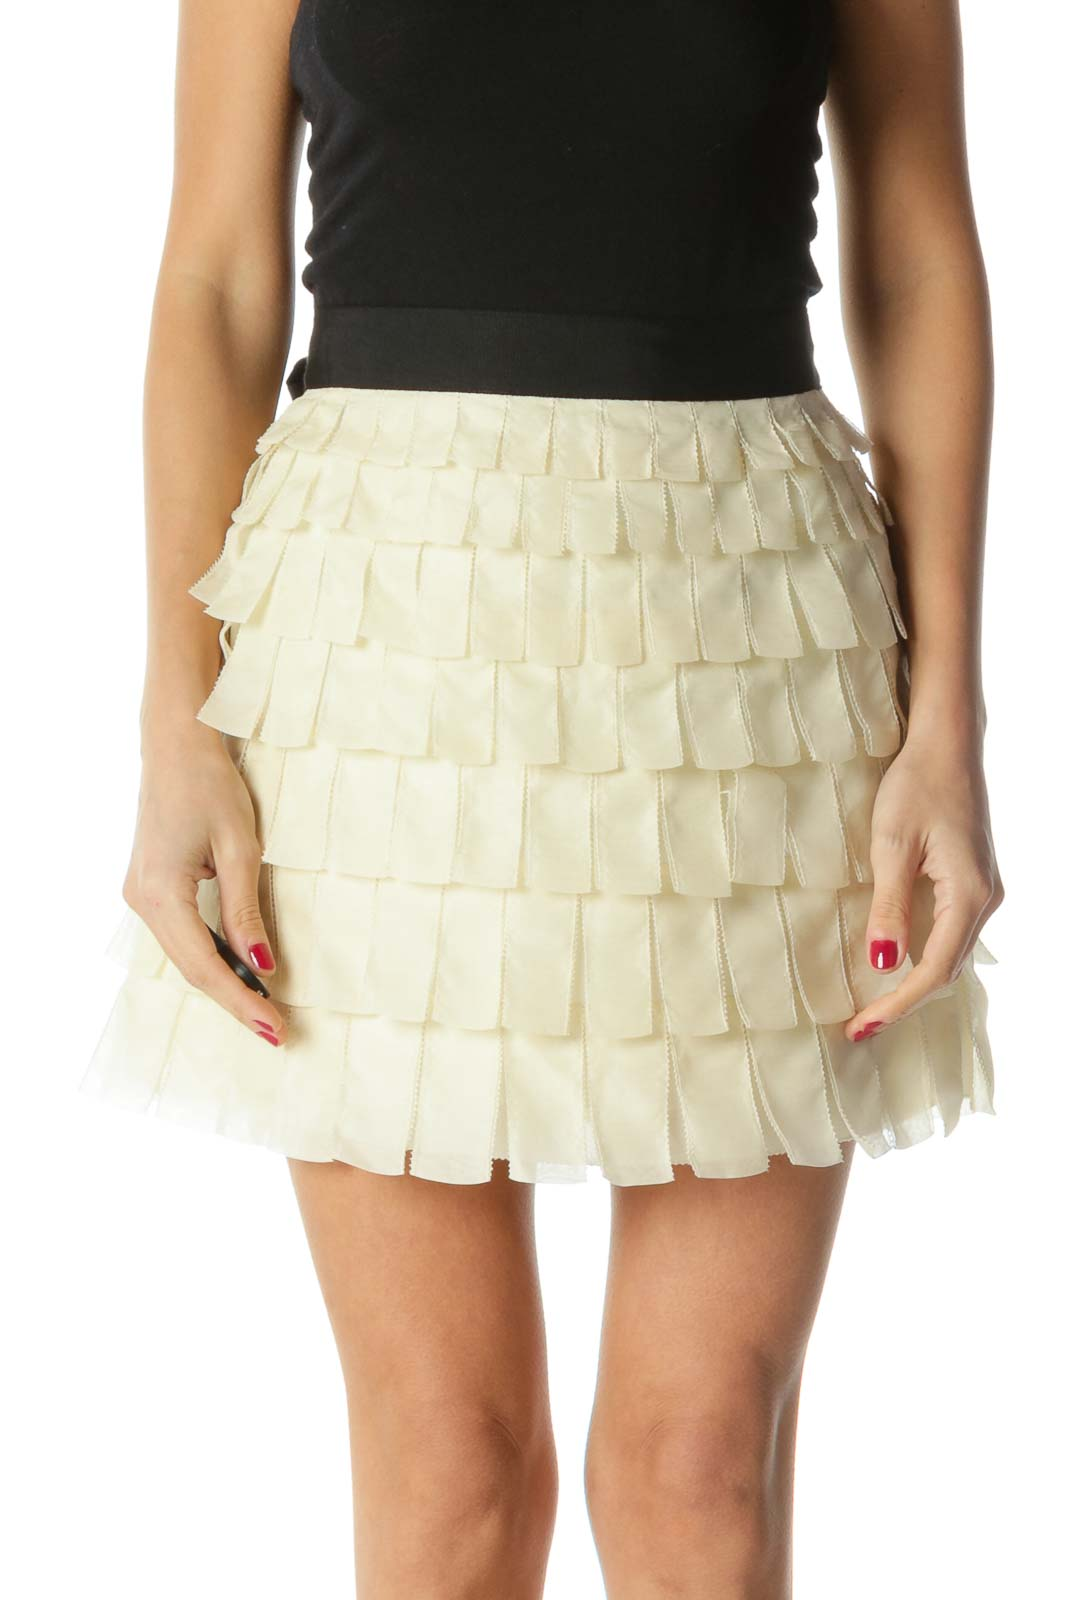 Cream Black Layered Appliques Skirt